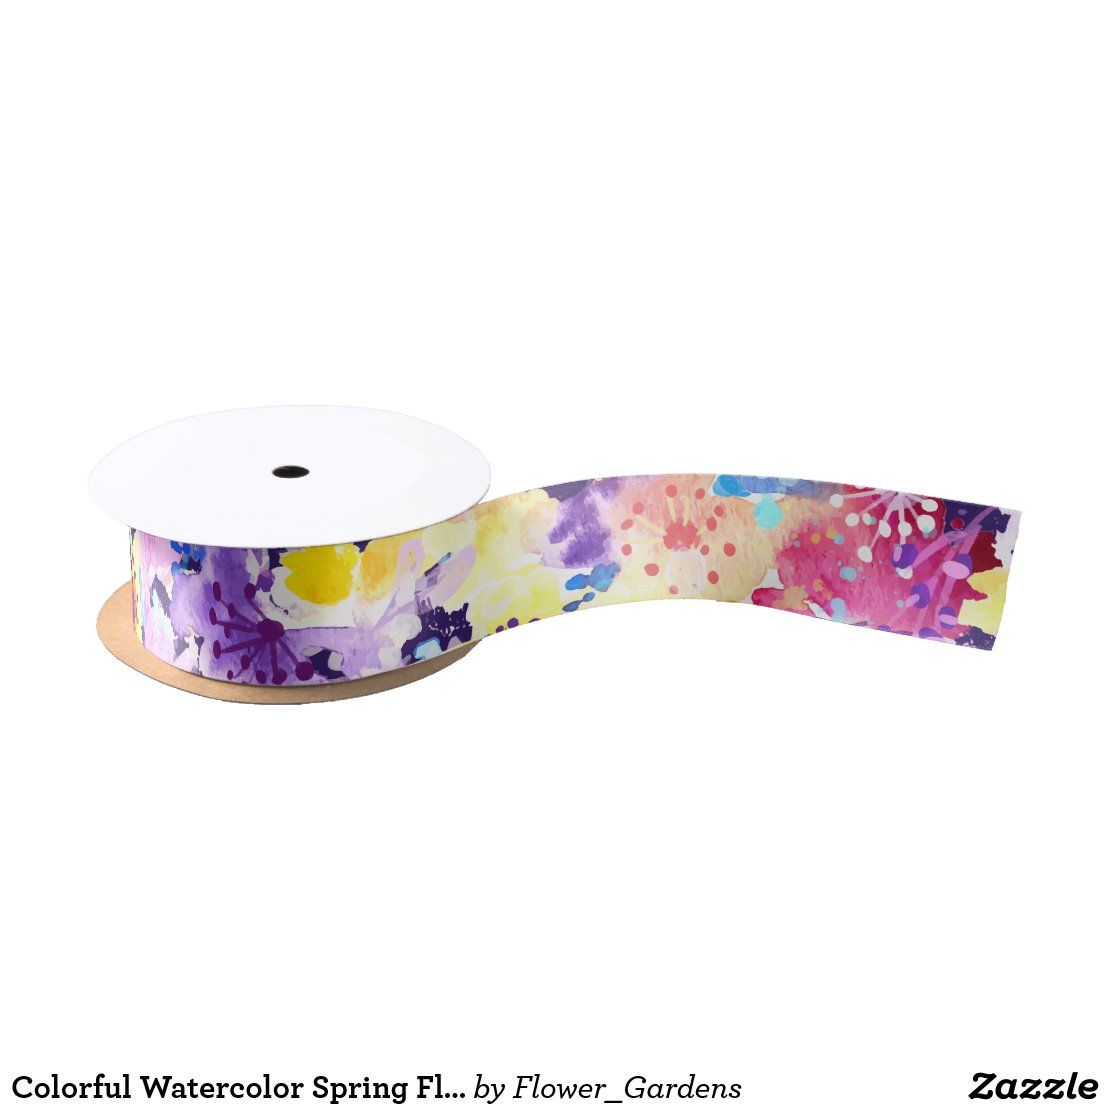 Feel the romance with this colorful watercolor spring flowers pattern. With this floral design, you will feel yourself cute, romantic and in the garden. #zazzle #watercolor #floral #flower #flowers #nature #romantic #spring #bridal  #artprint #gifts #gift #giftideas #design #unique #custom #wrapping #wrappingpaper #paper #tissuepaper #ribbon #package #giftbox #birthday #wedding #bridal #giftwrap #tags #wine #DIY